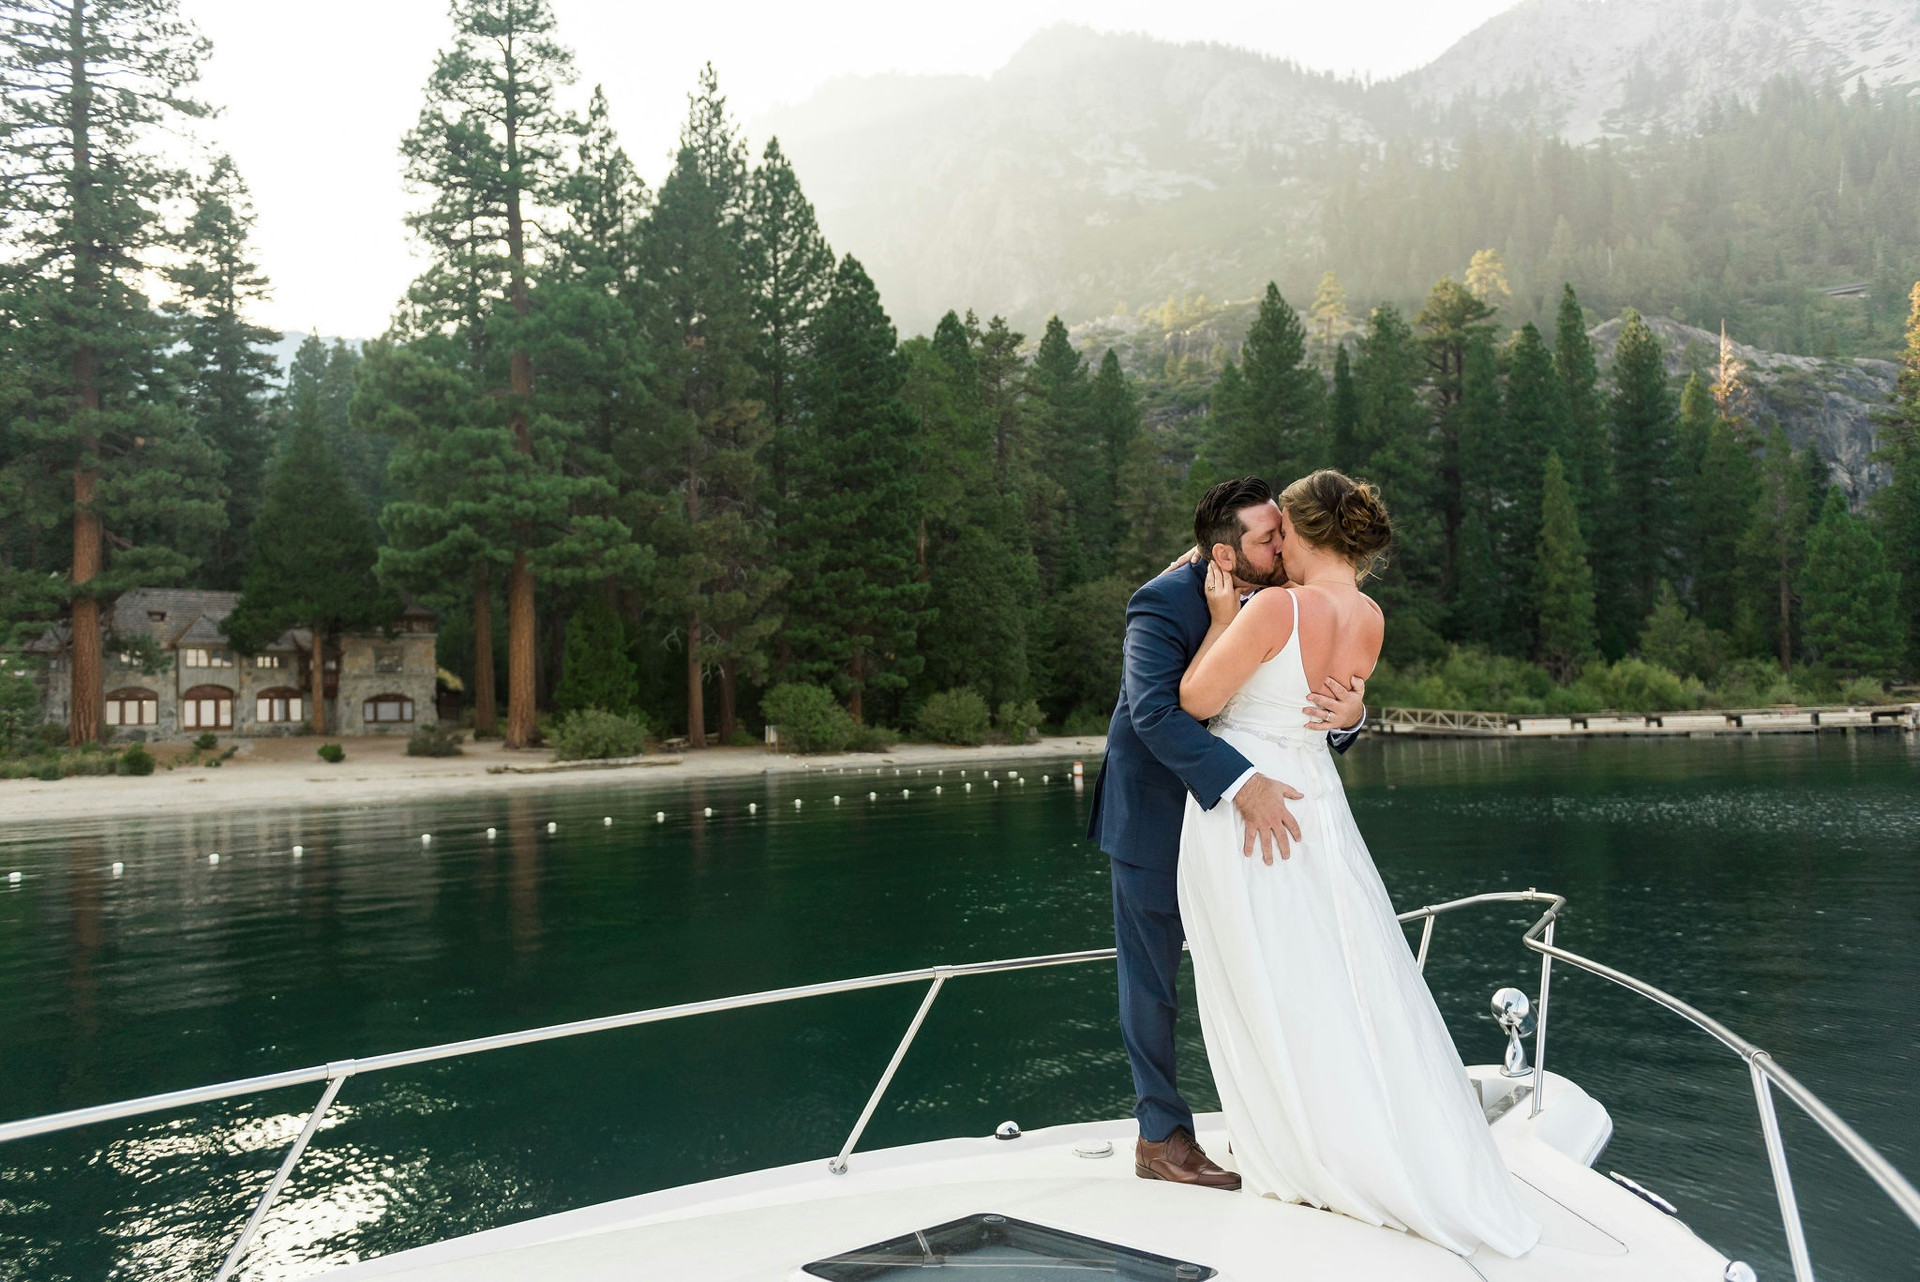 Emerald Bay, Lake Tahoe Wedding Photographer | The newlyweds share their first kiss